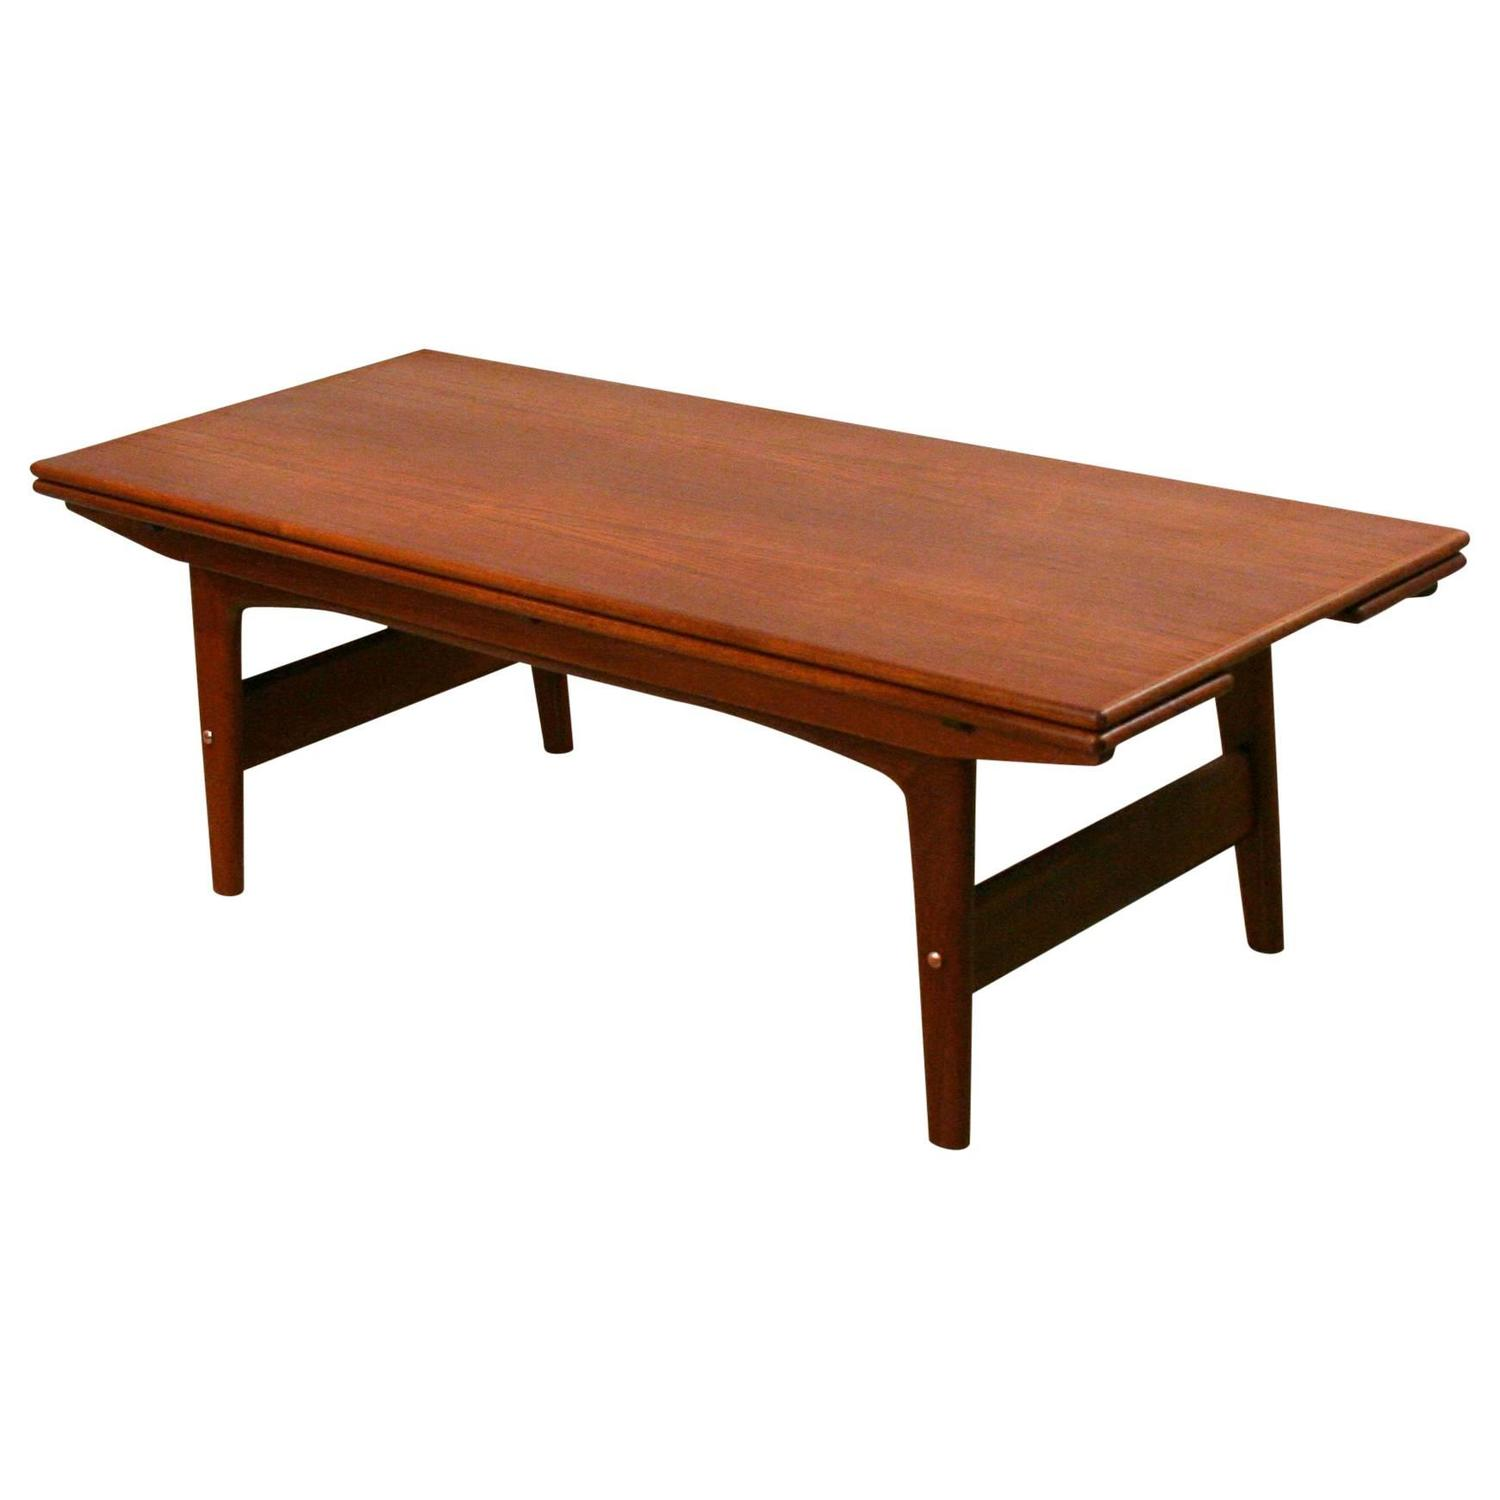 Vintage Danish Teak Elevator Coffee Table at 1stdibs